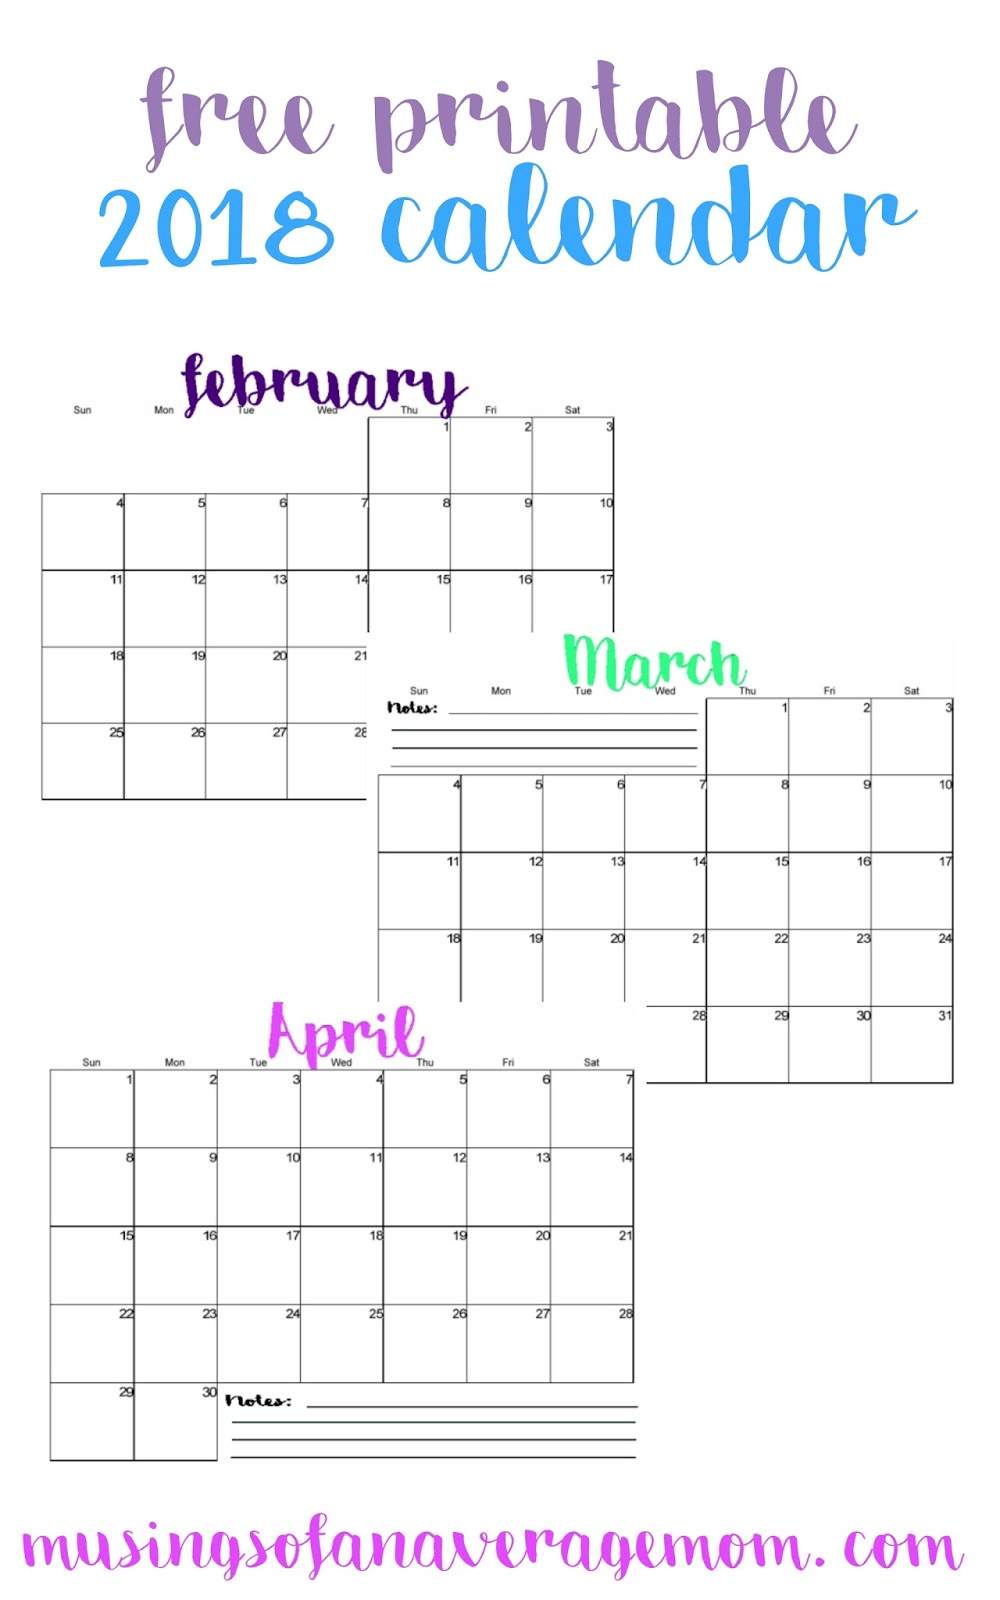 Calendar Monthly Printable : Musings of an average mom horizontal calendars